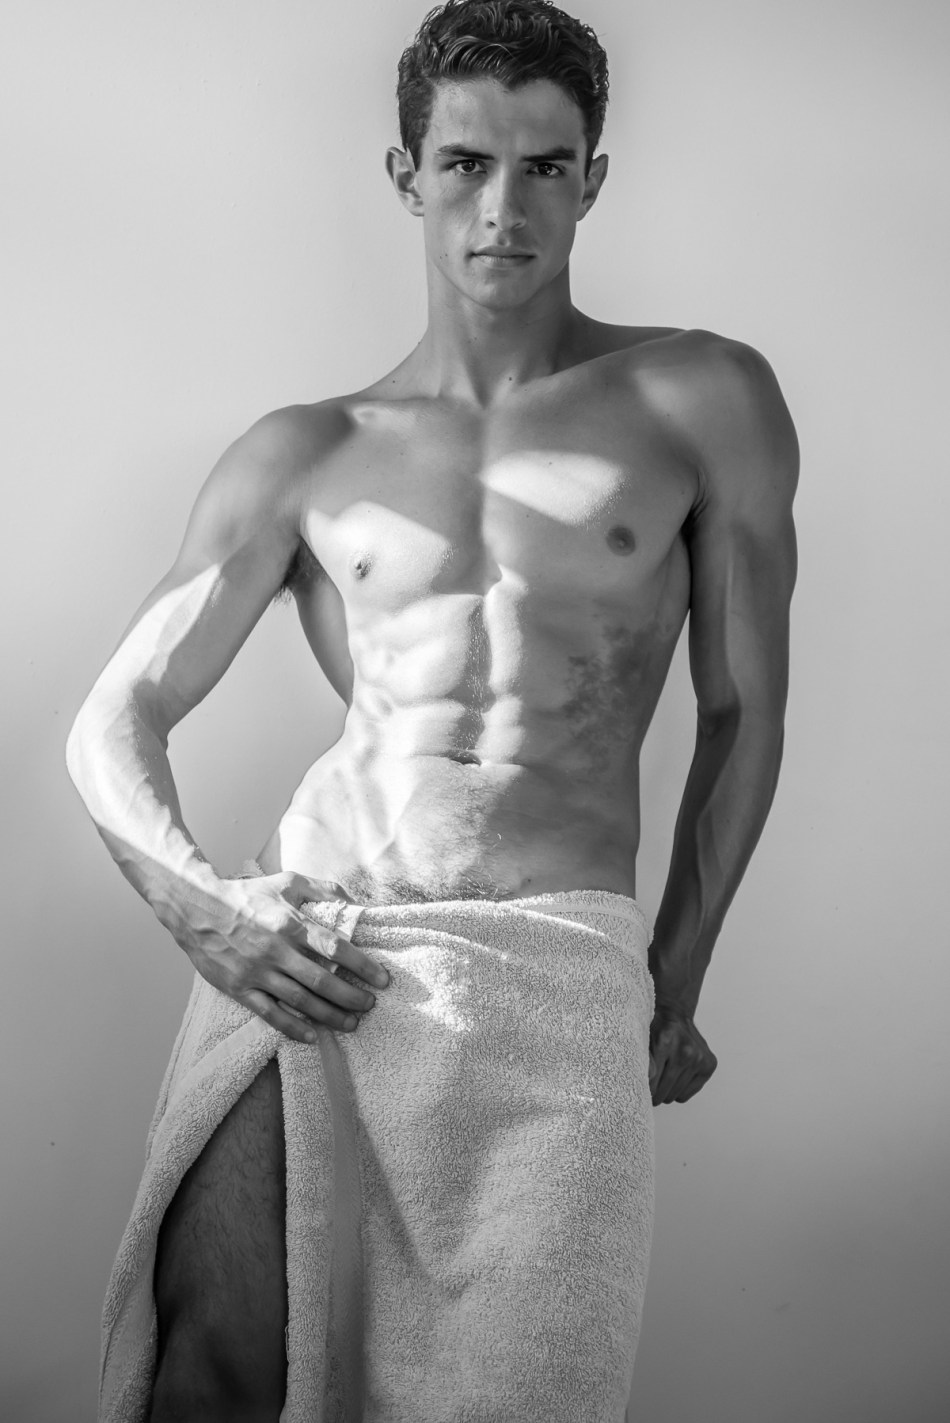 Discovering Model Nick Canto Thanks to Scott Teitler